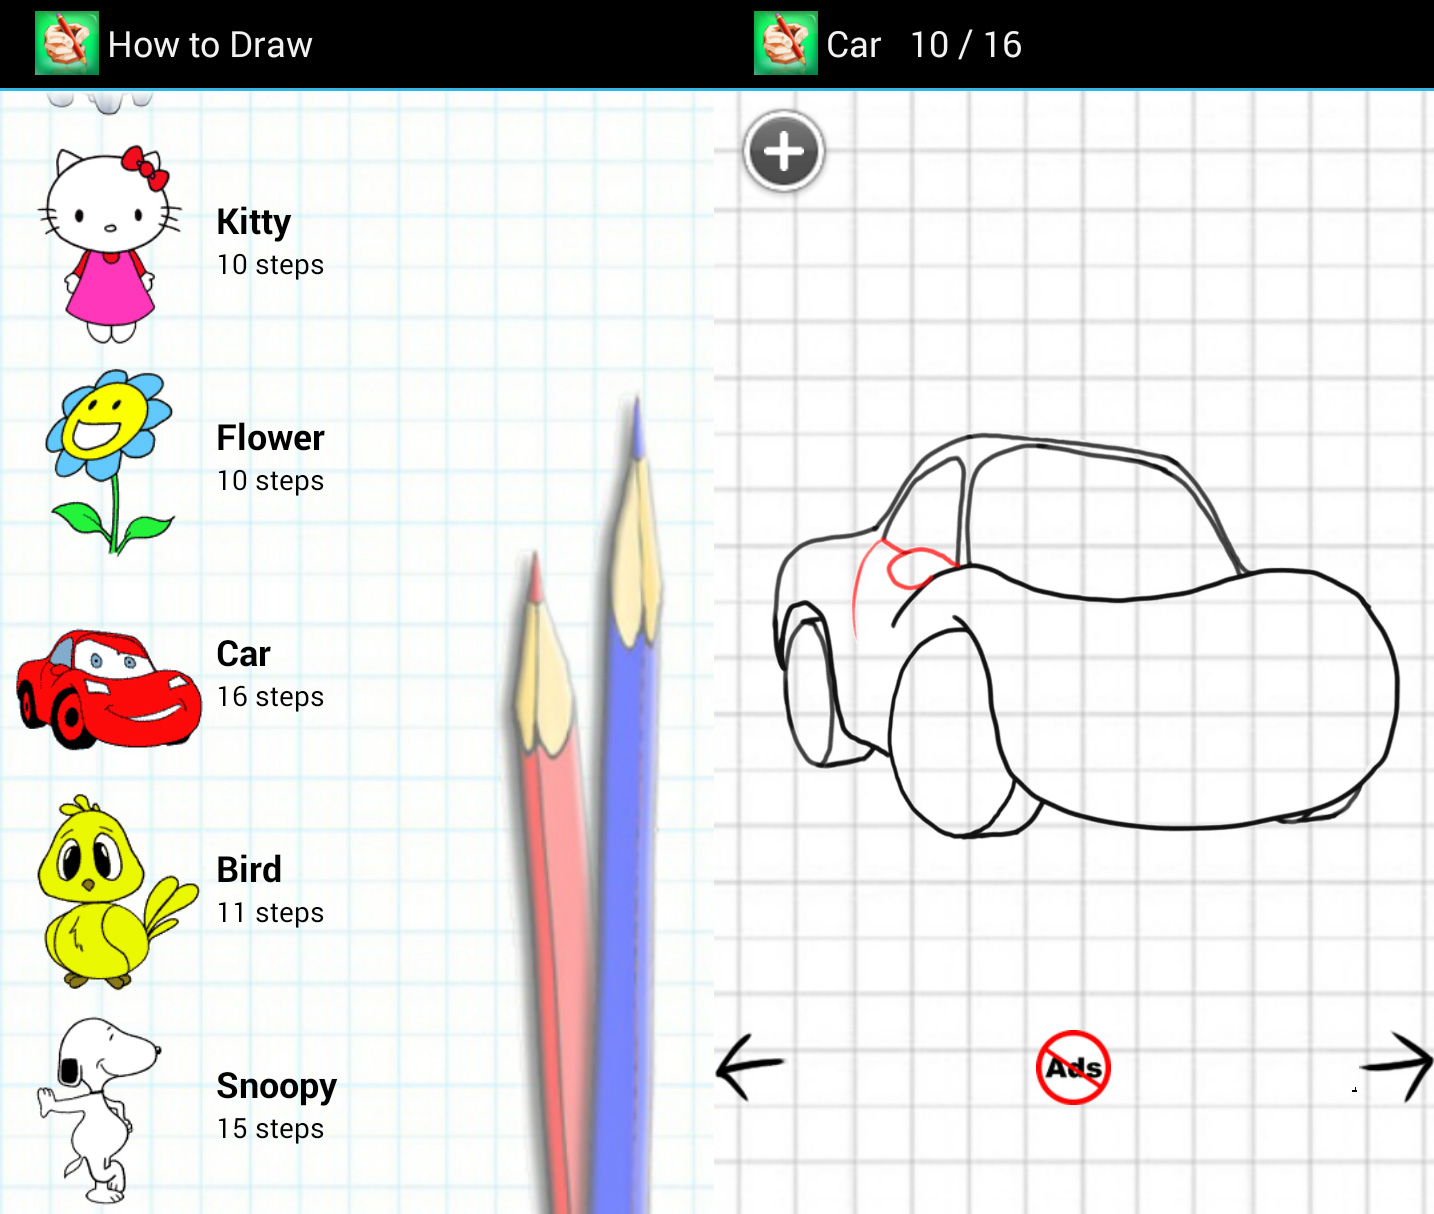 How-to-Draw-Android